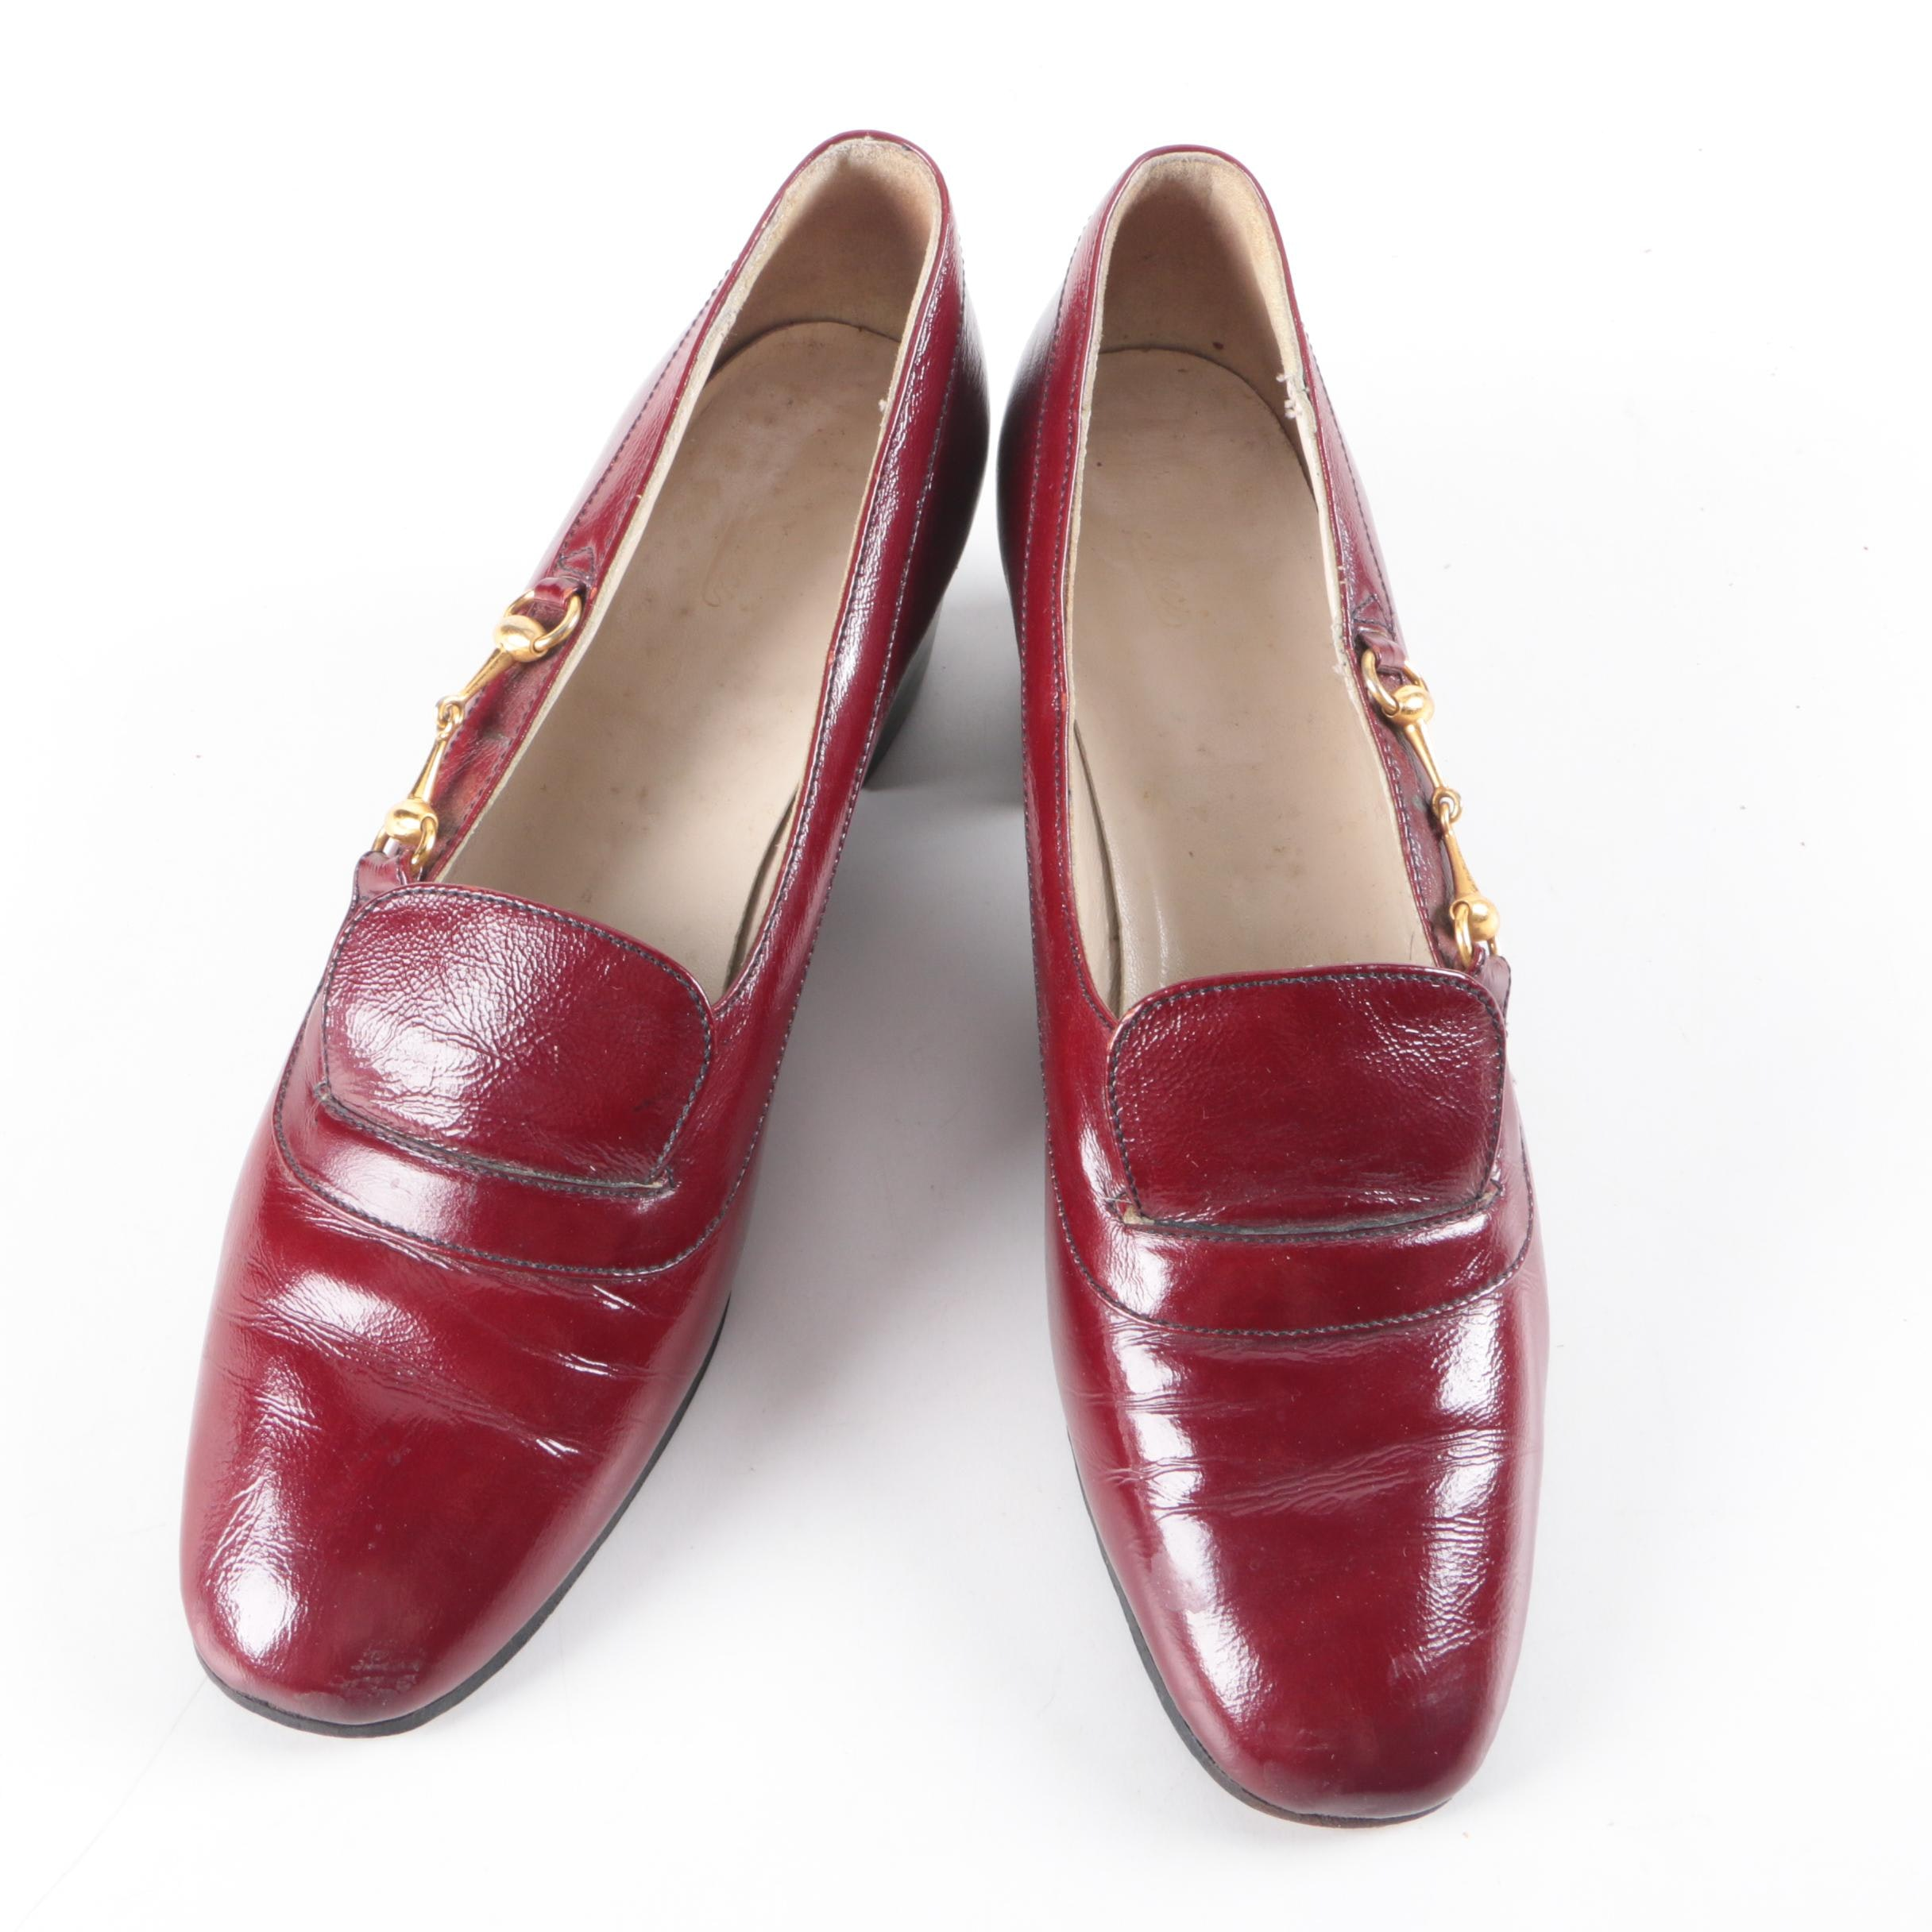 Women's Circa 1960 Vintage Gucci Burgundy Leather Horsebit High-Heeled Loafers